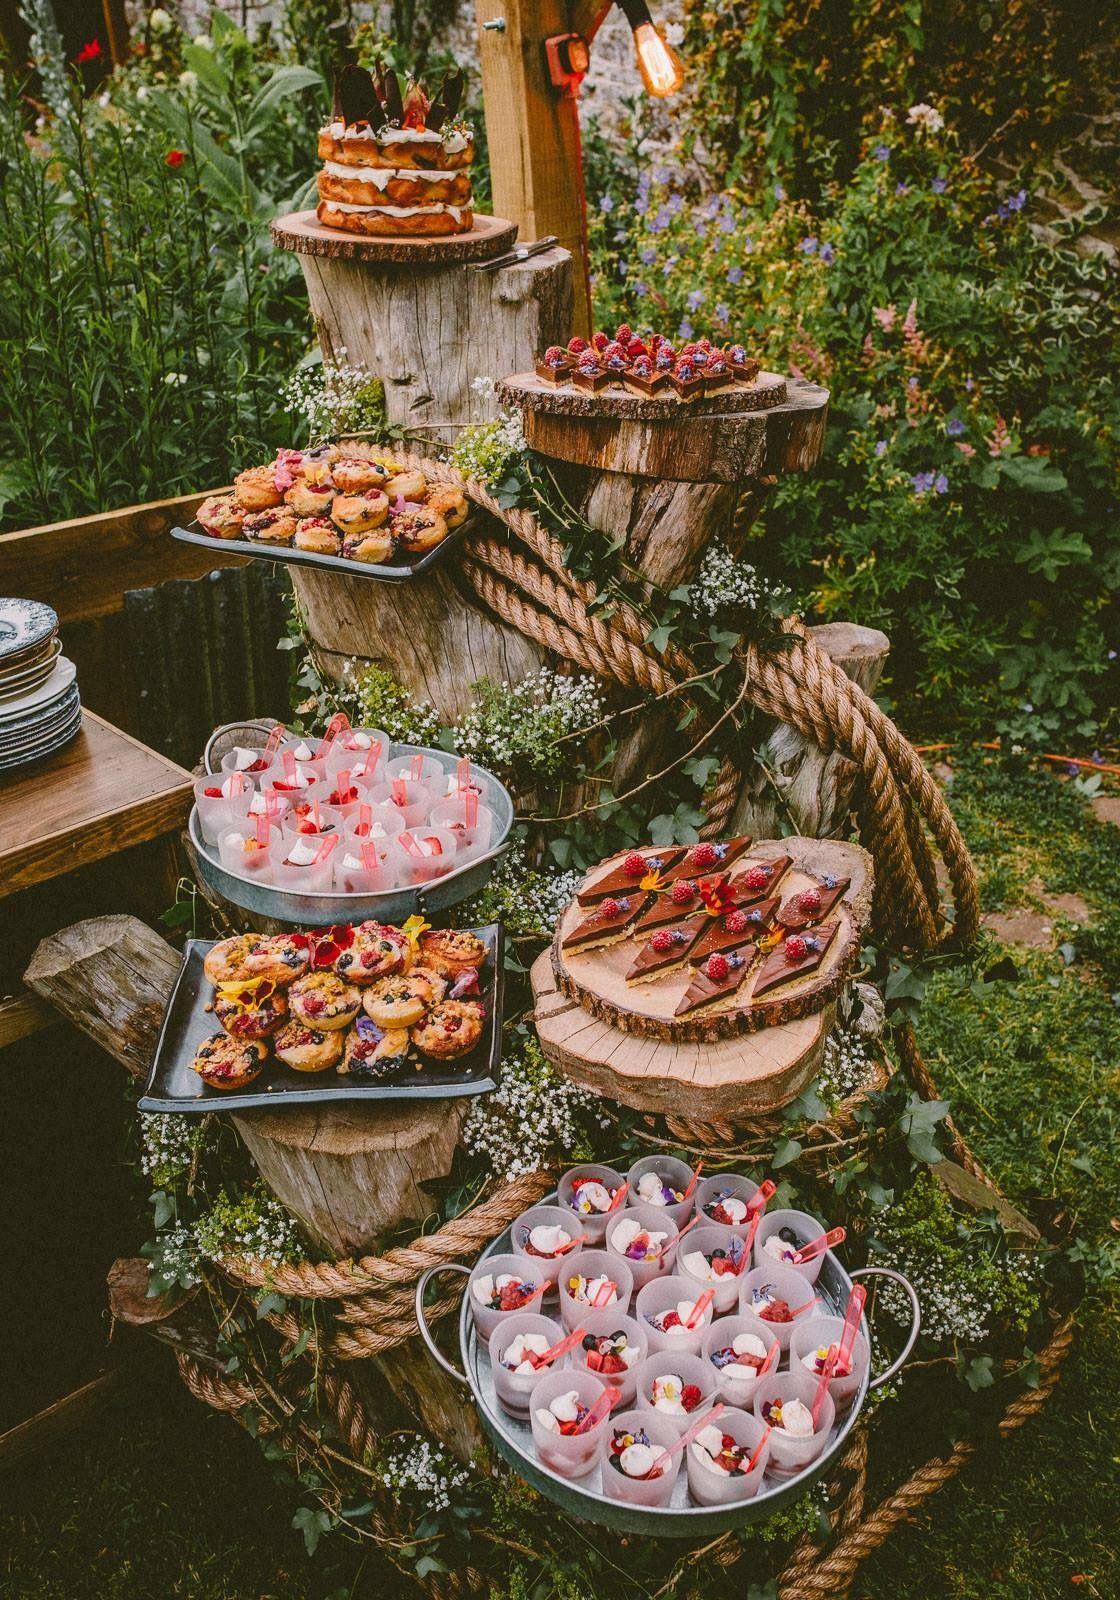 creative food display ideas for rustic country weddings